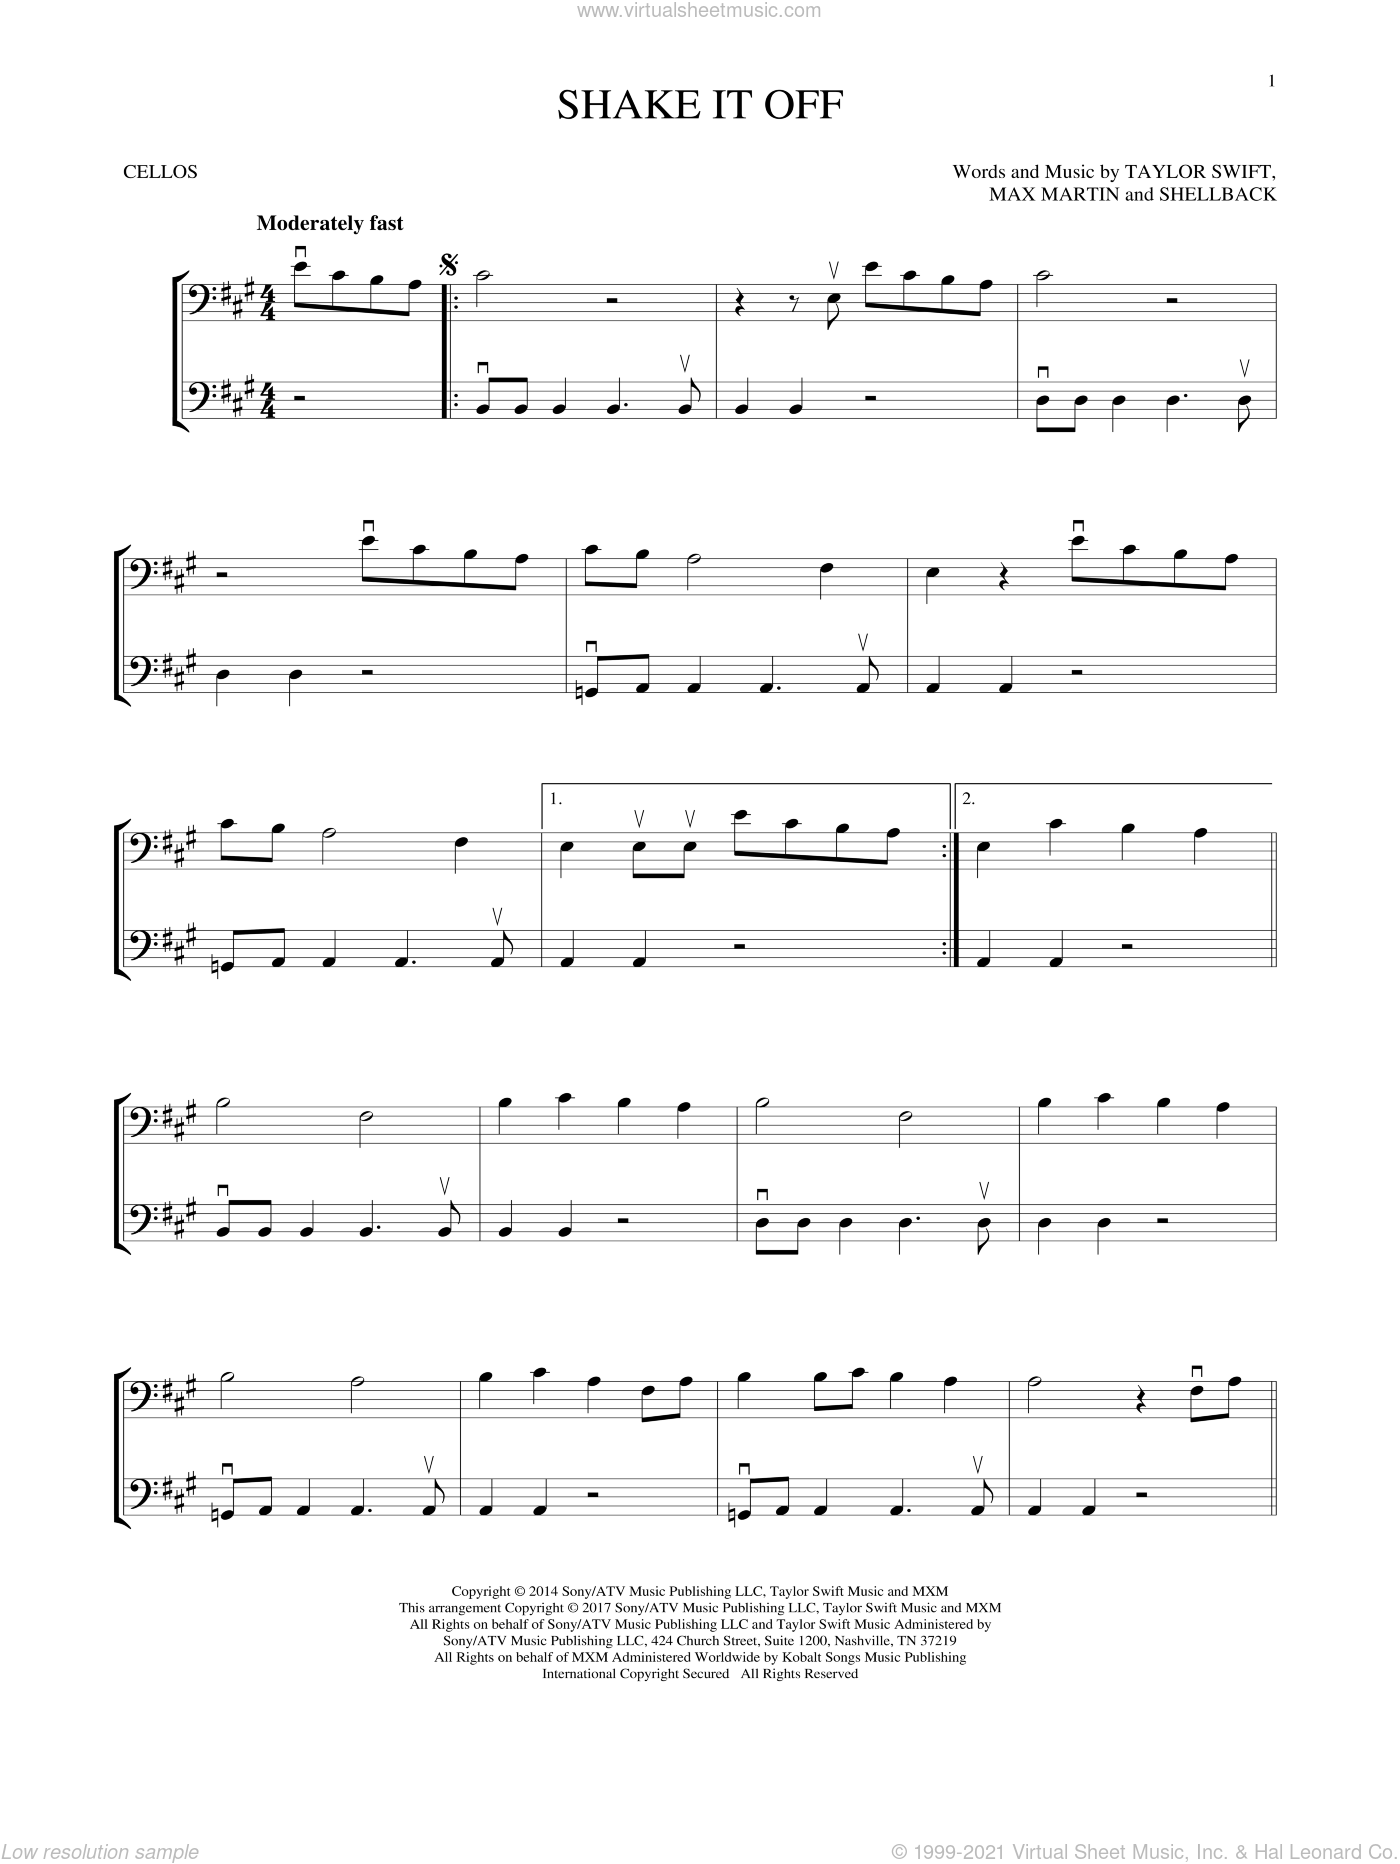 Shake It Off sheet music for two cellos (duet, duets) by Taylor Swift, Johan Schuster, Max Martin and Shellback, intermediate skill level